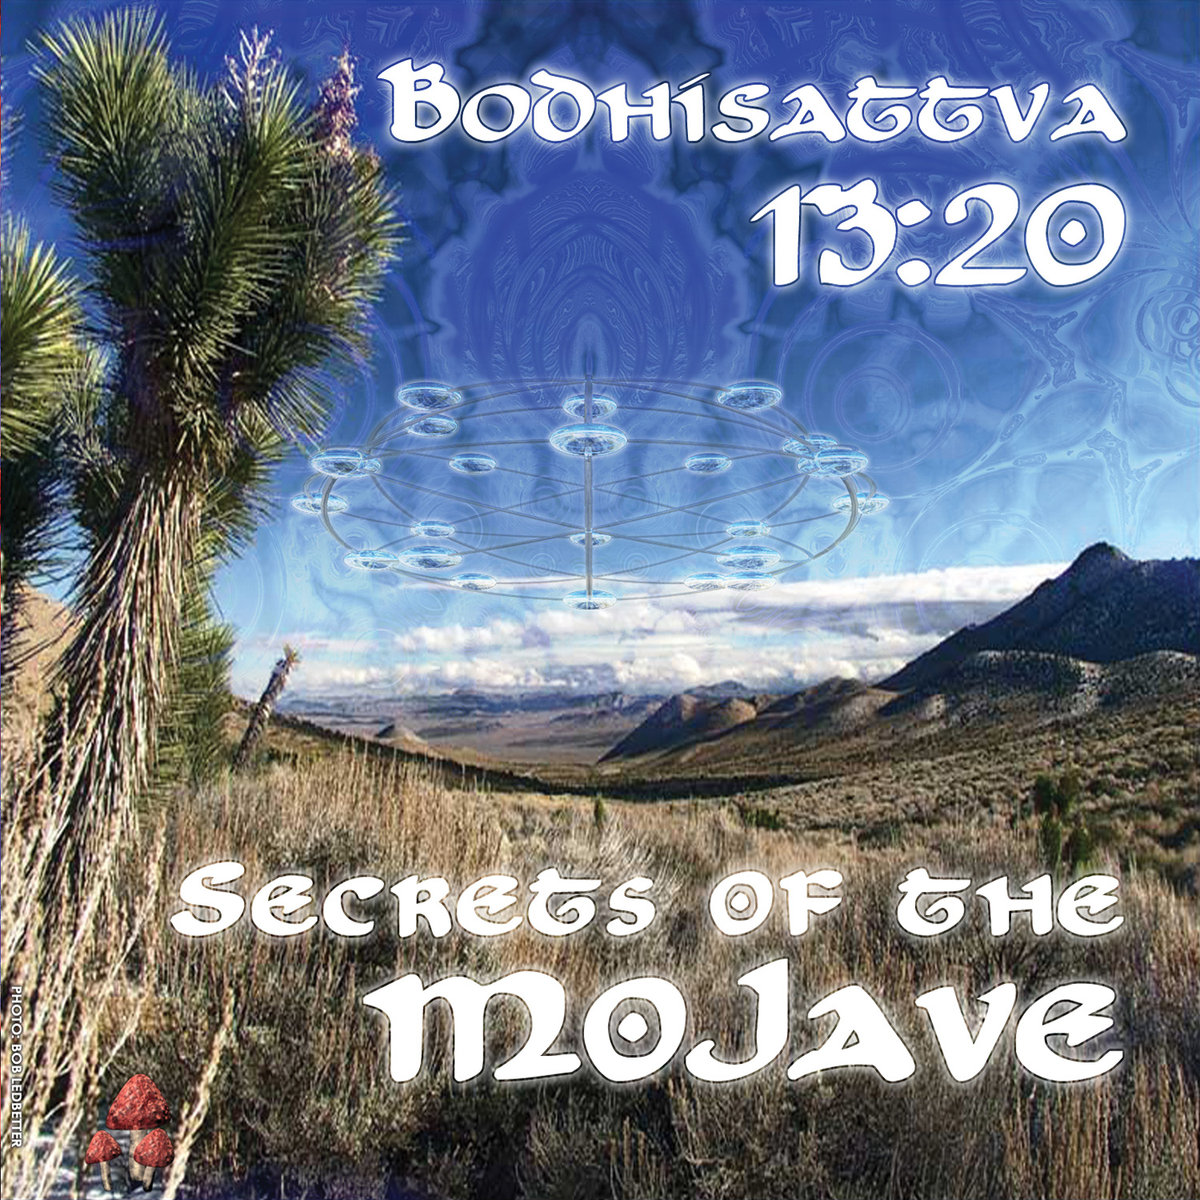 Bodhisattva 13:20 - Wave Functions @ 'Secrets of the Mojave' album (electronic, goa)